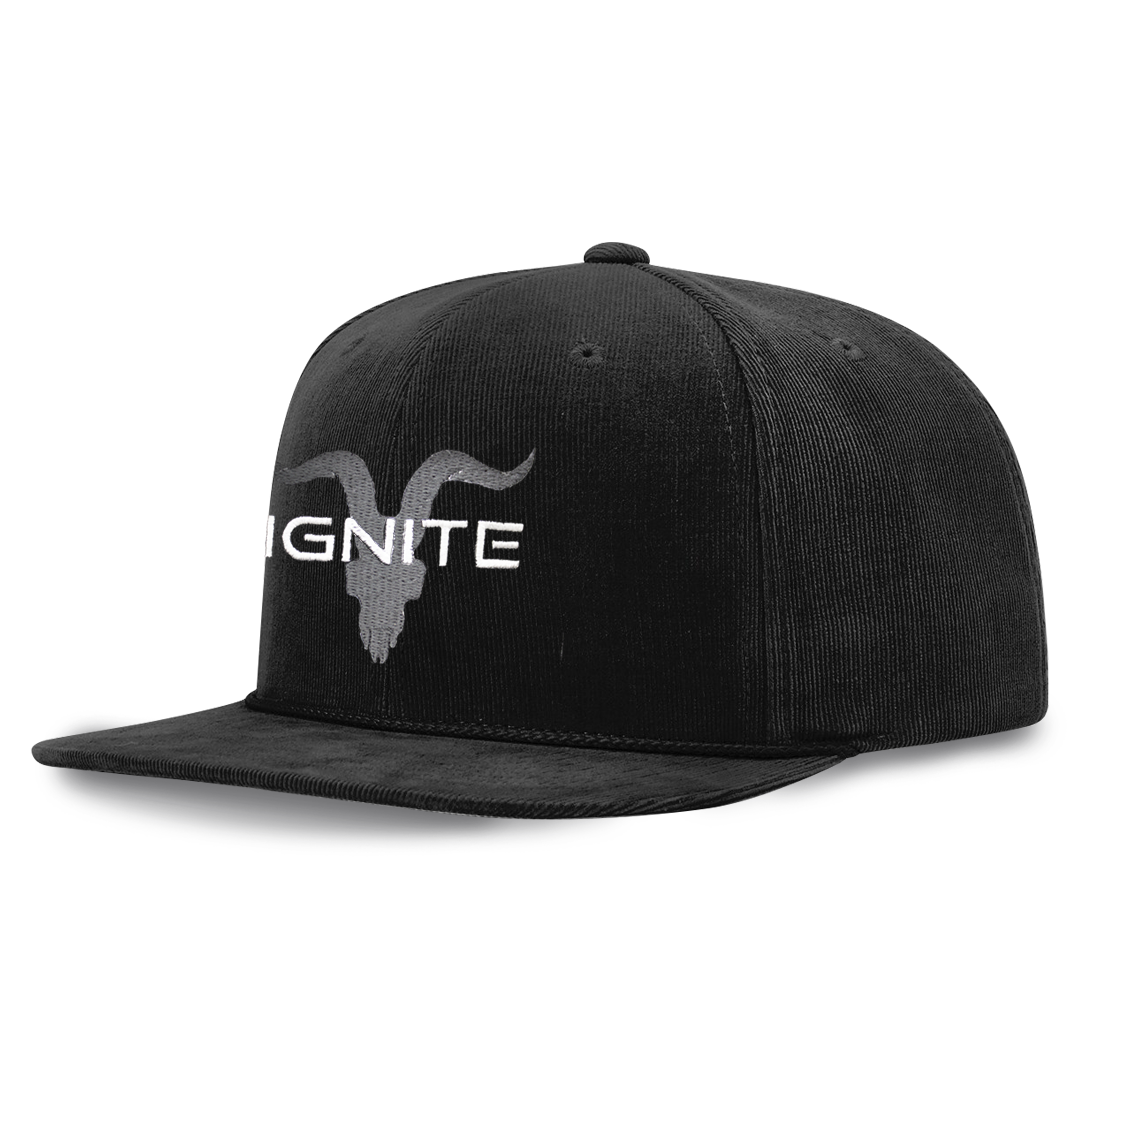 Ignite Premium Collection Black Corduroy Flat Bill Baseball Cap